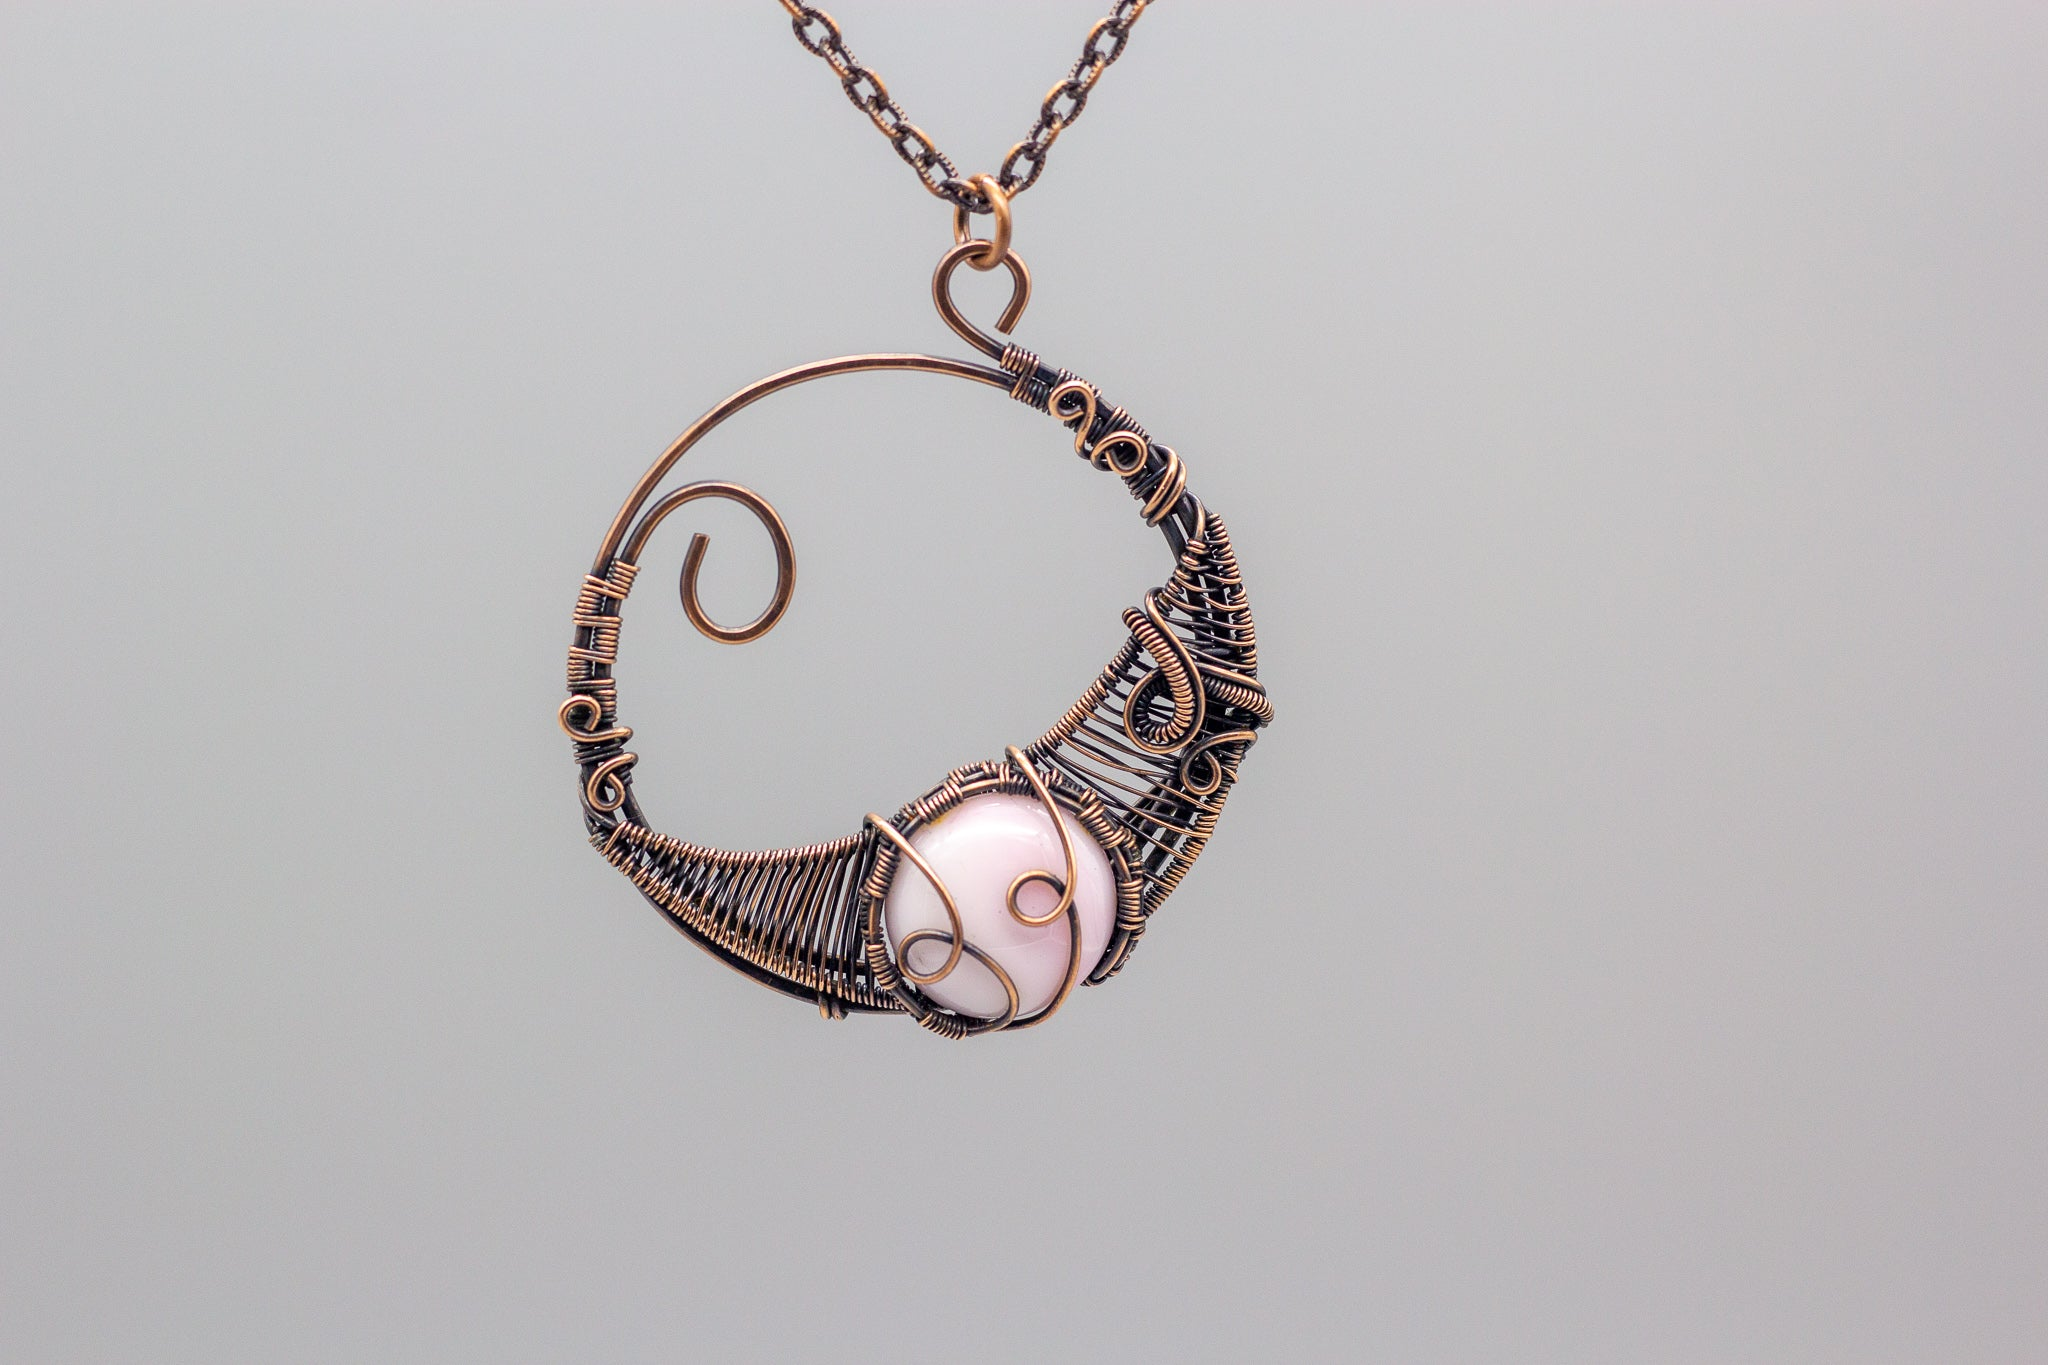 handmade circular pendant with copper wire wrapping and pink fused glass accent